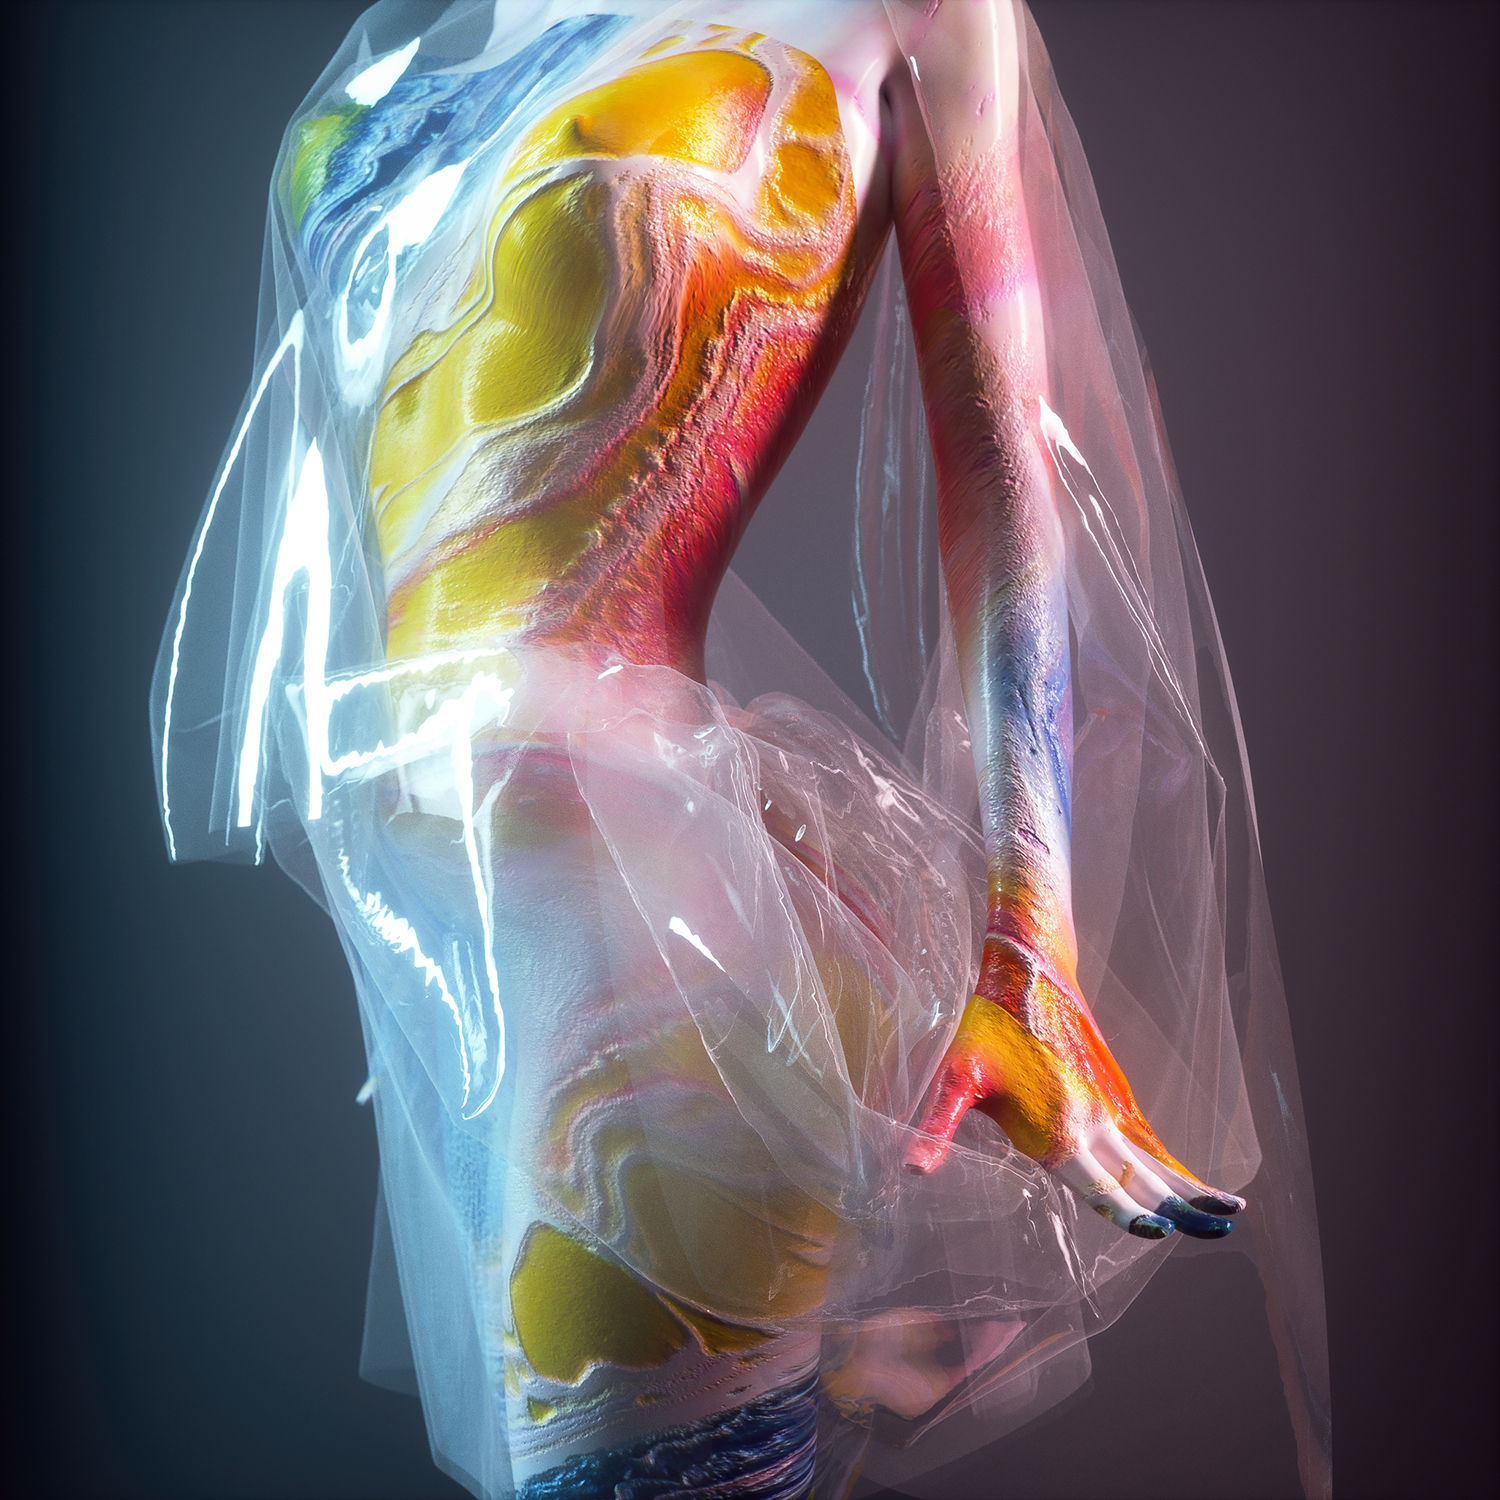 mirage, colorful woman, body shot, 3d art